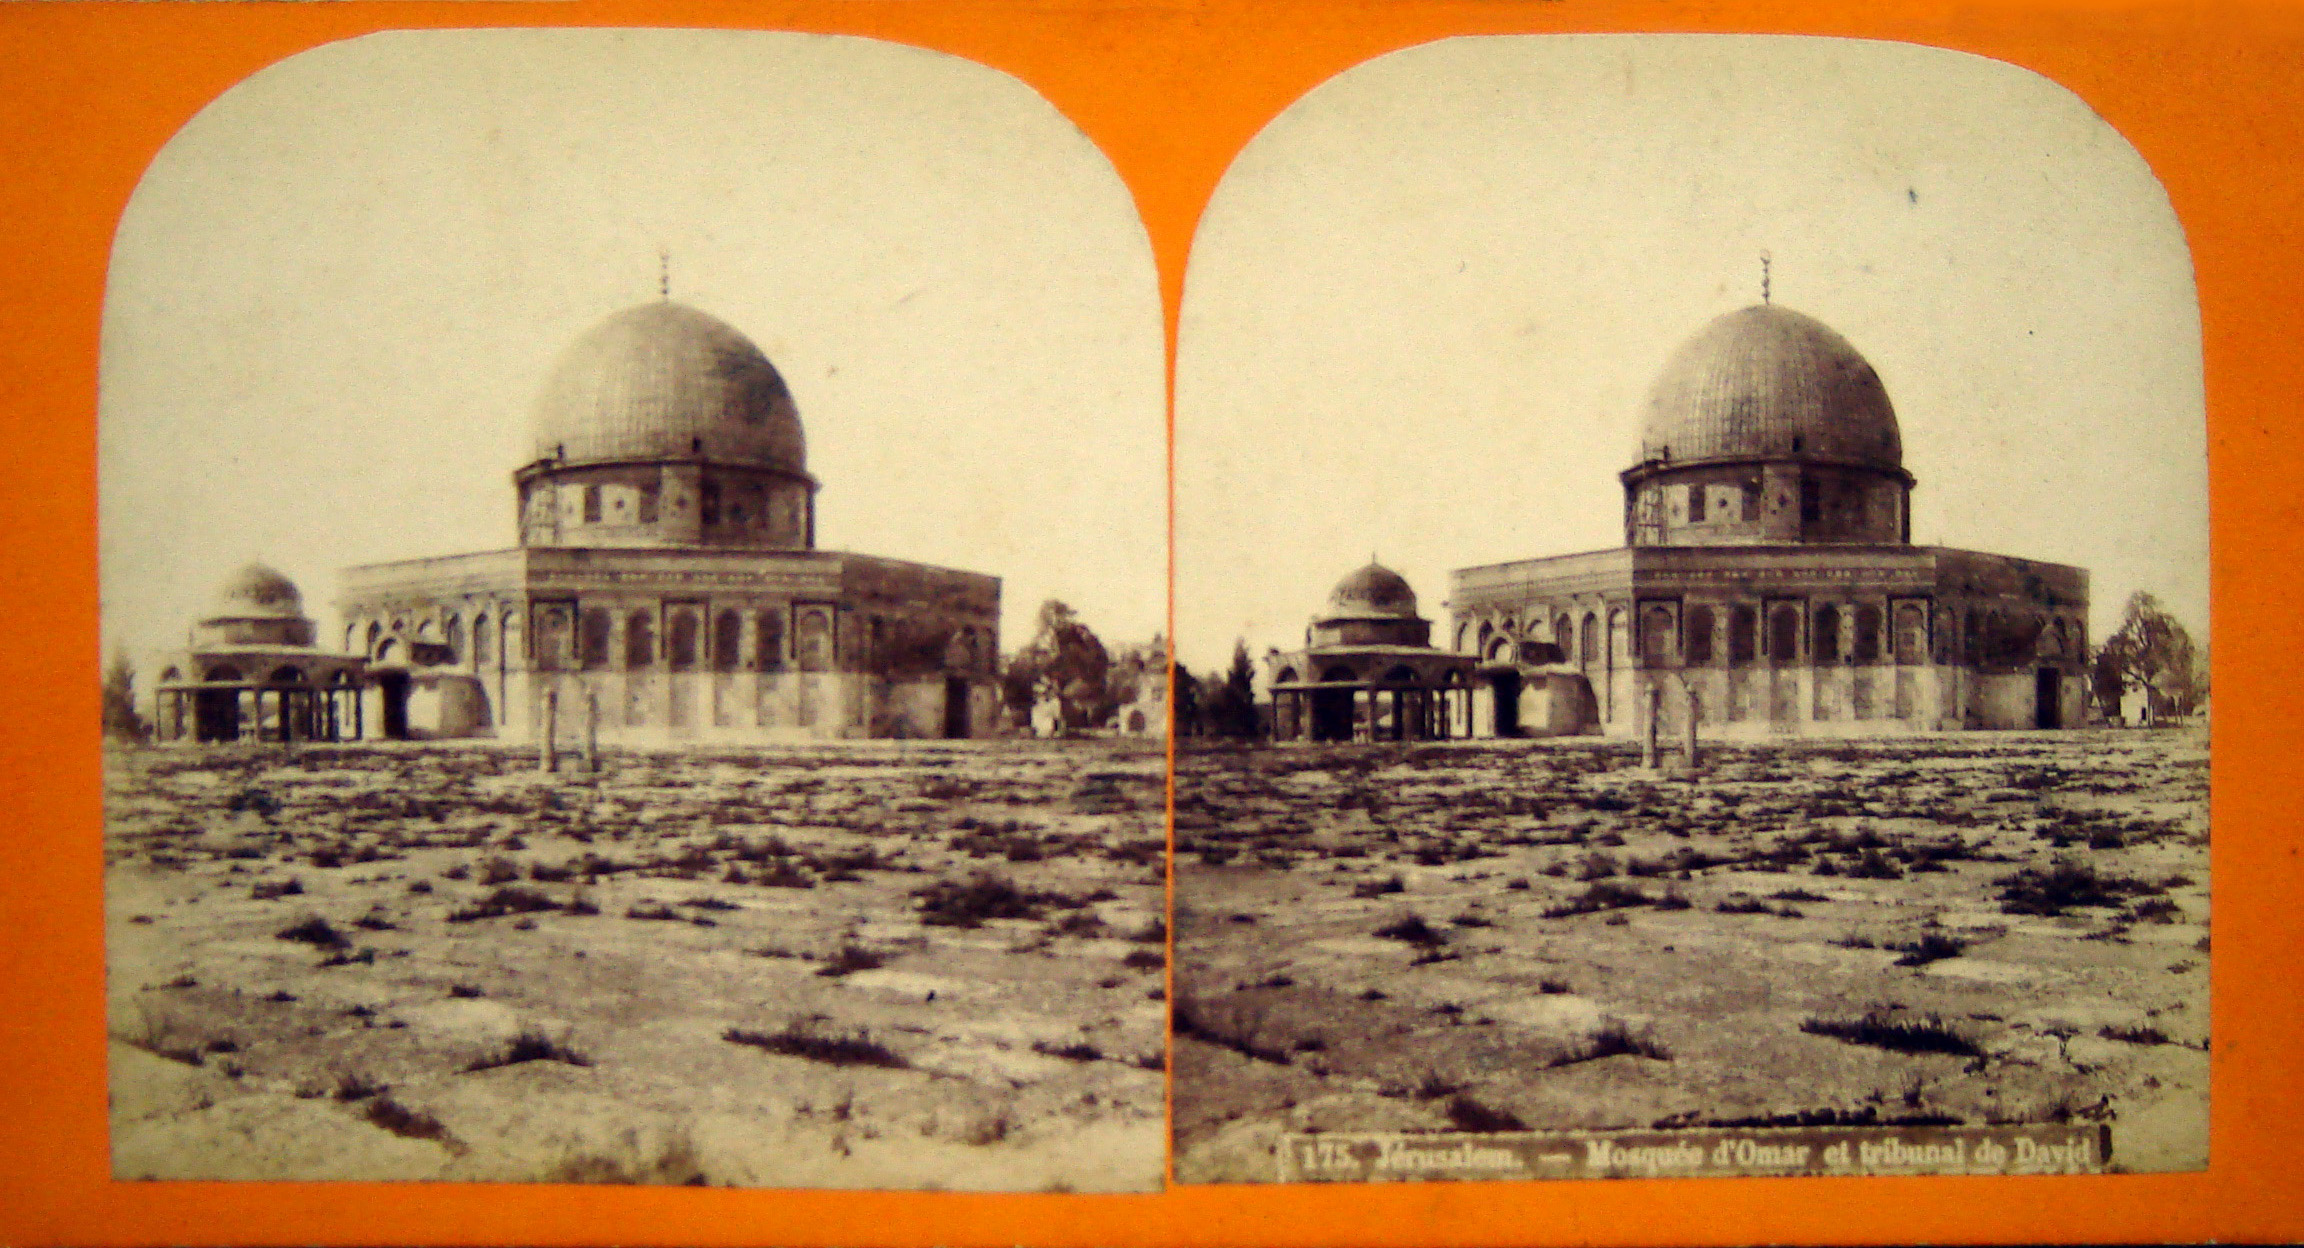 A stereo card of the Dome of the Rock from the late 19th century. Wikipedia.